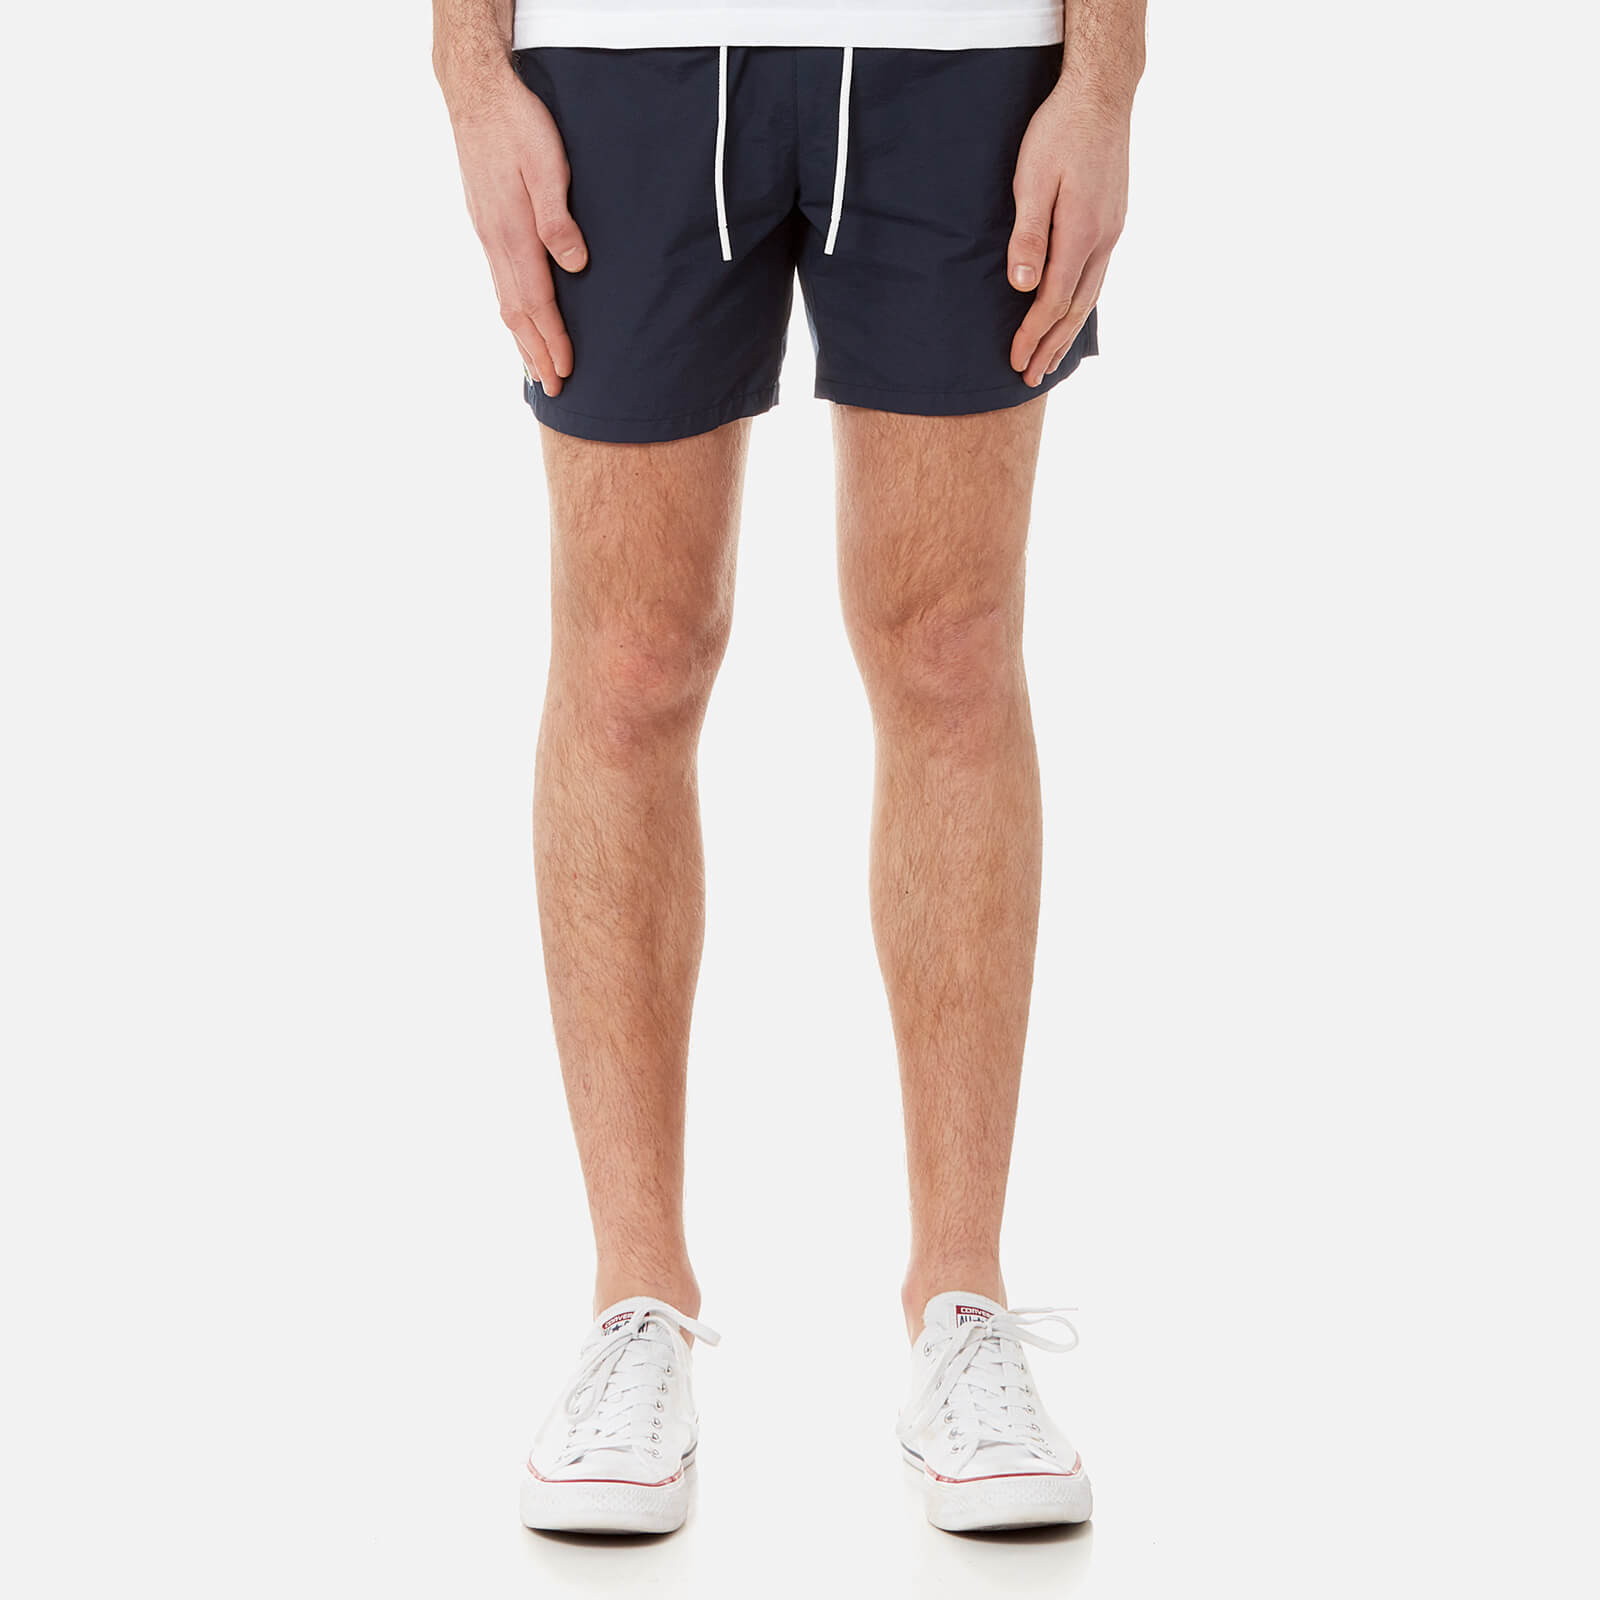 a9d94763e Lacoste Men s Basic Swim Shorts - Navy Blue - Free UK Delivery over £50